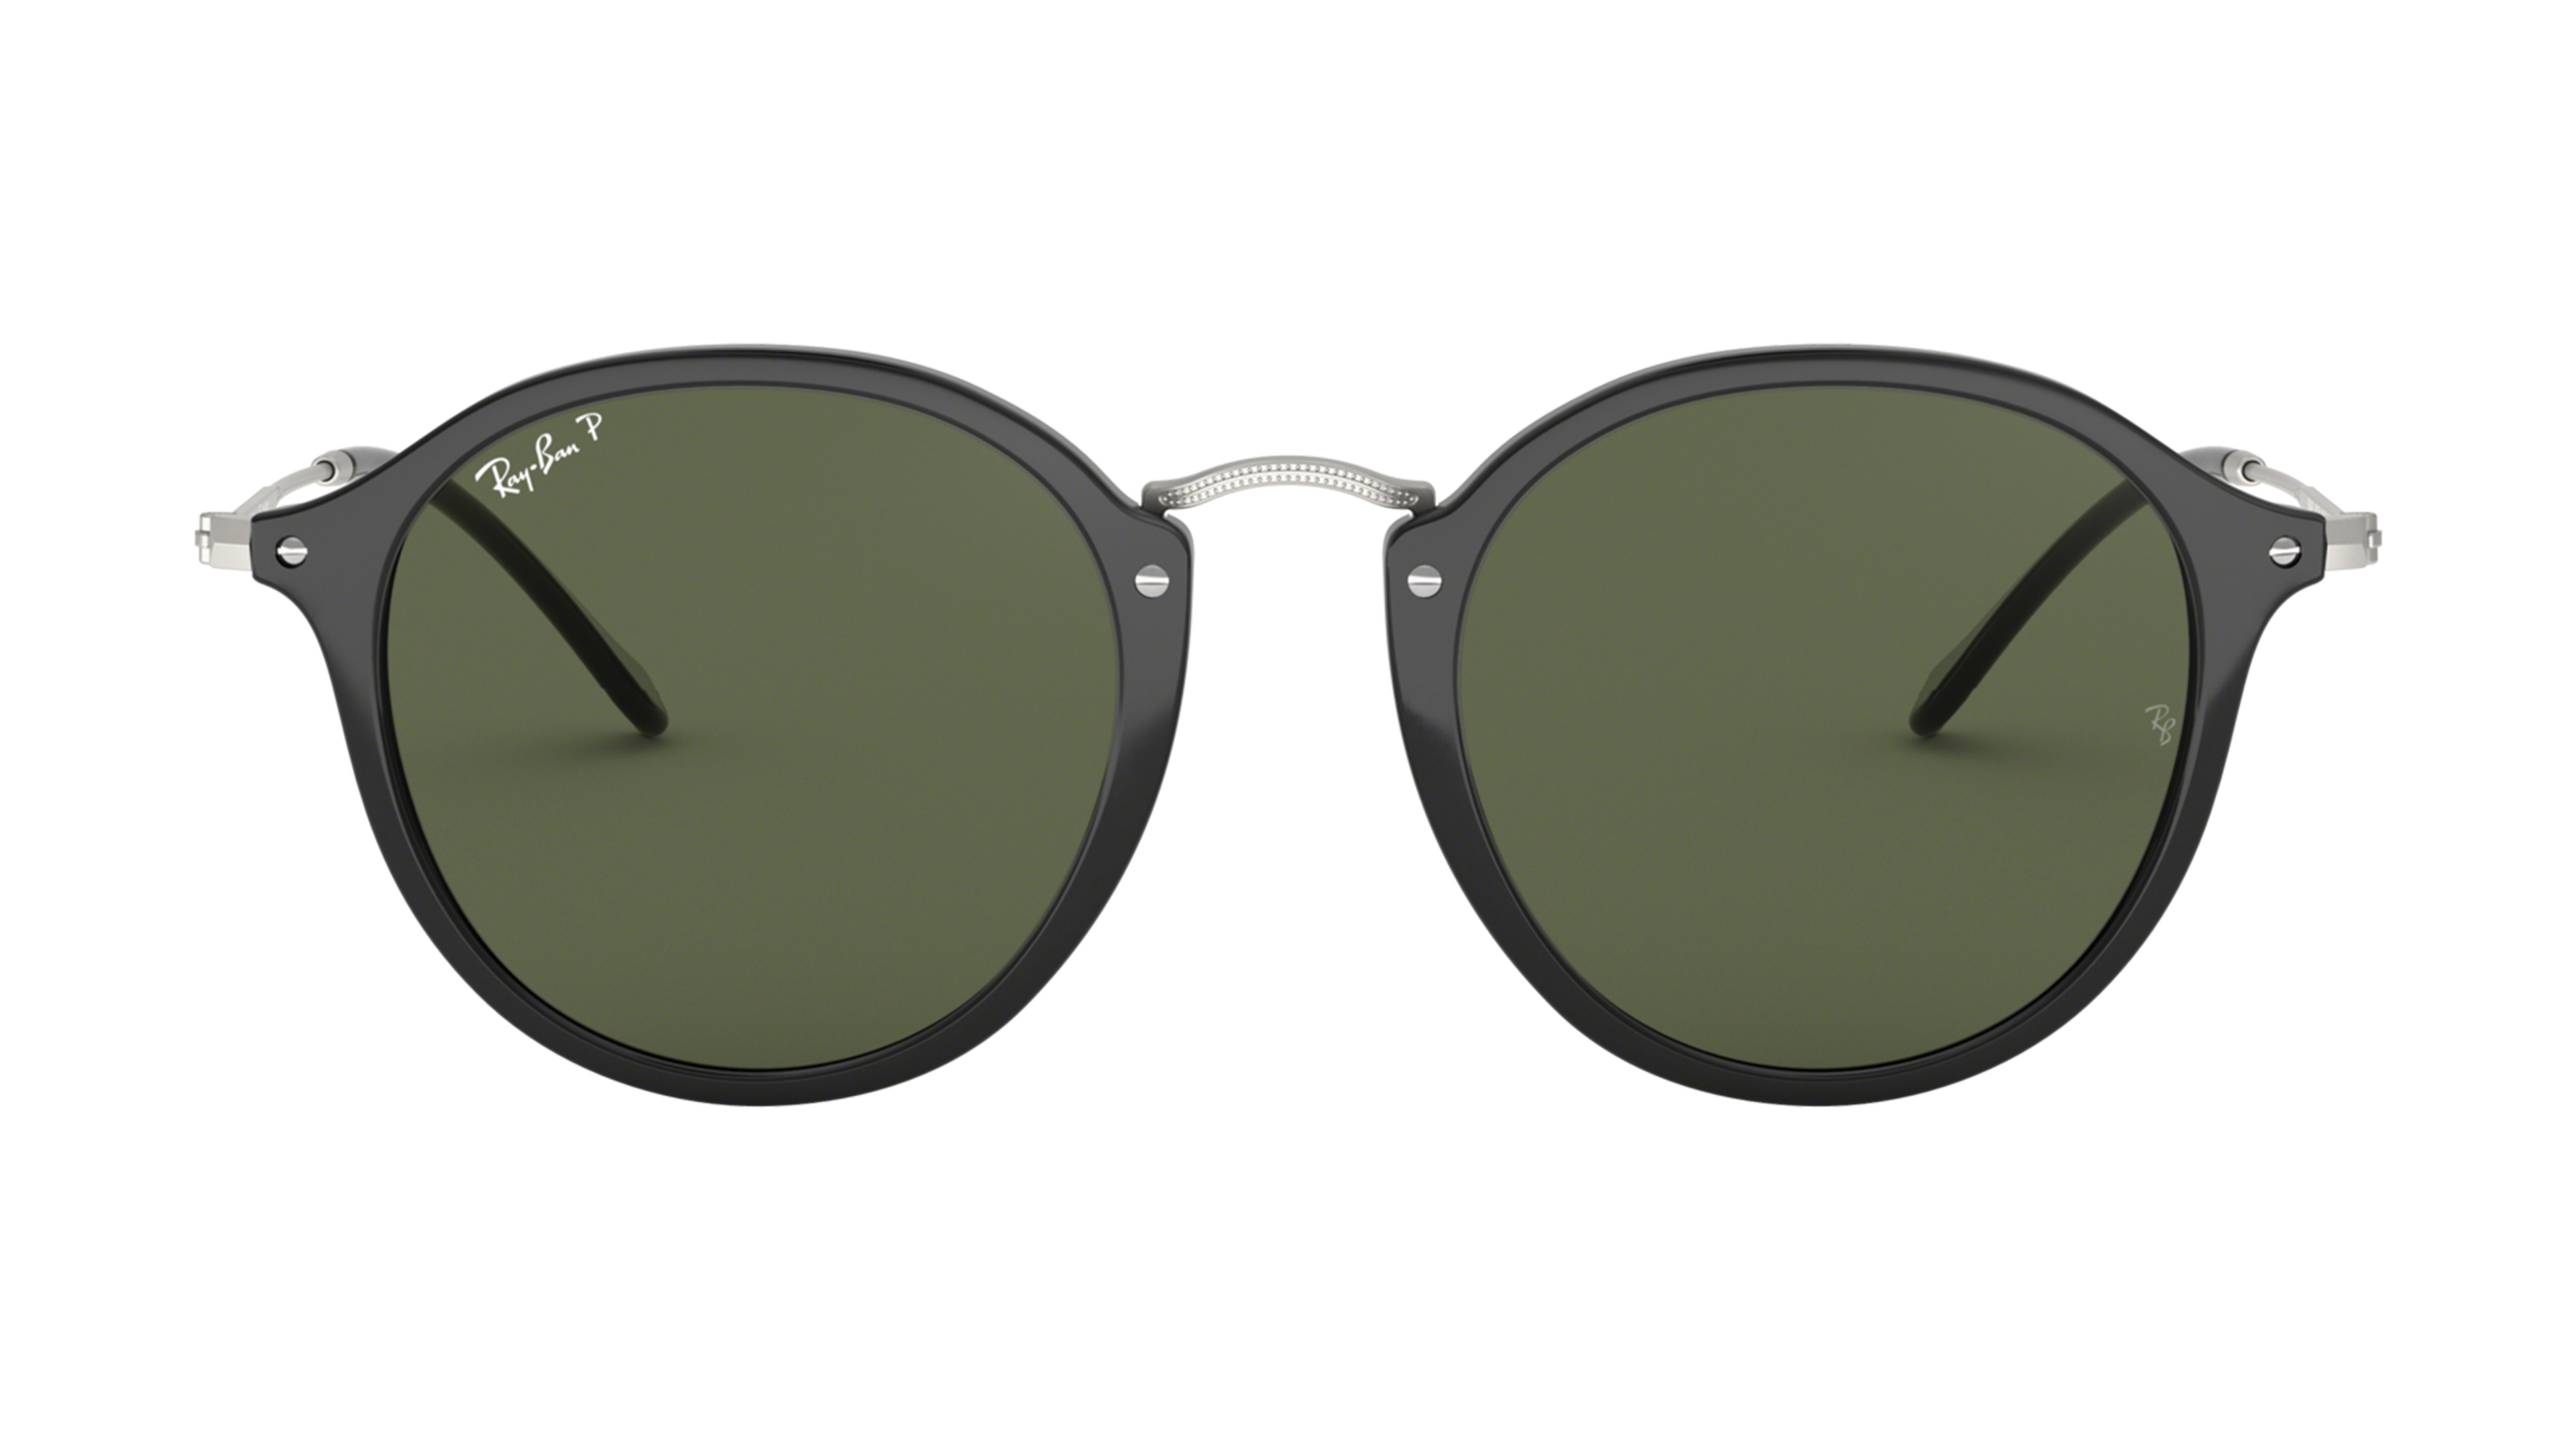 8053672416046-front-Ray-Ban-0RB2447-901-58